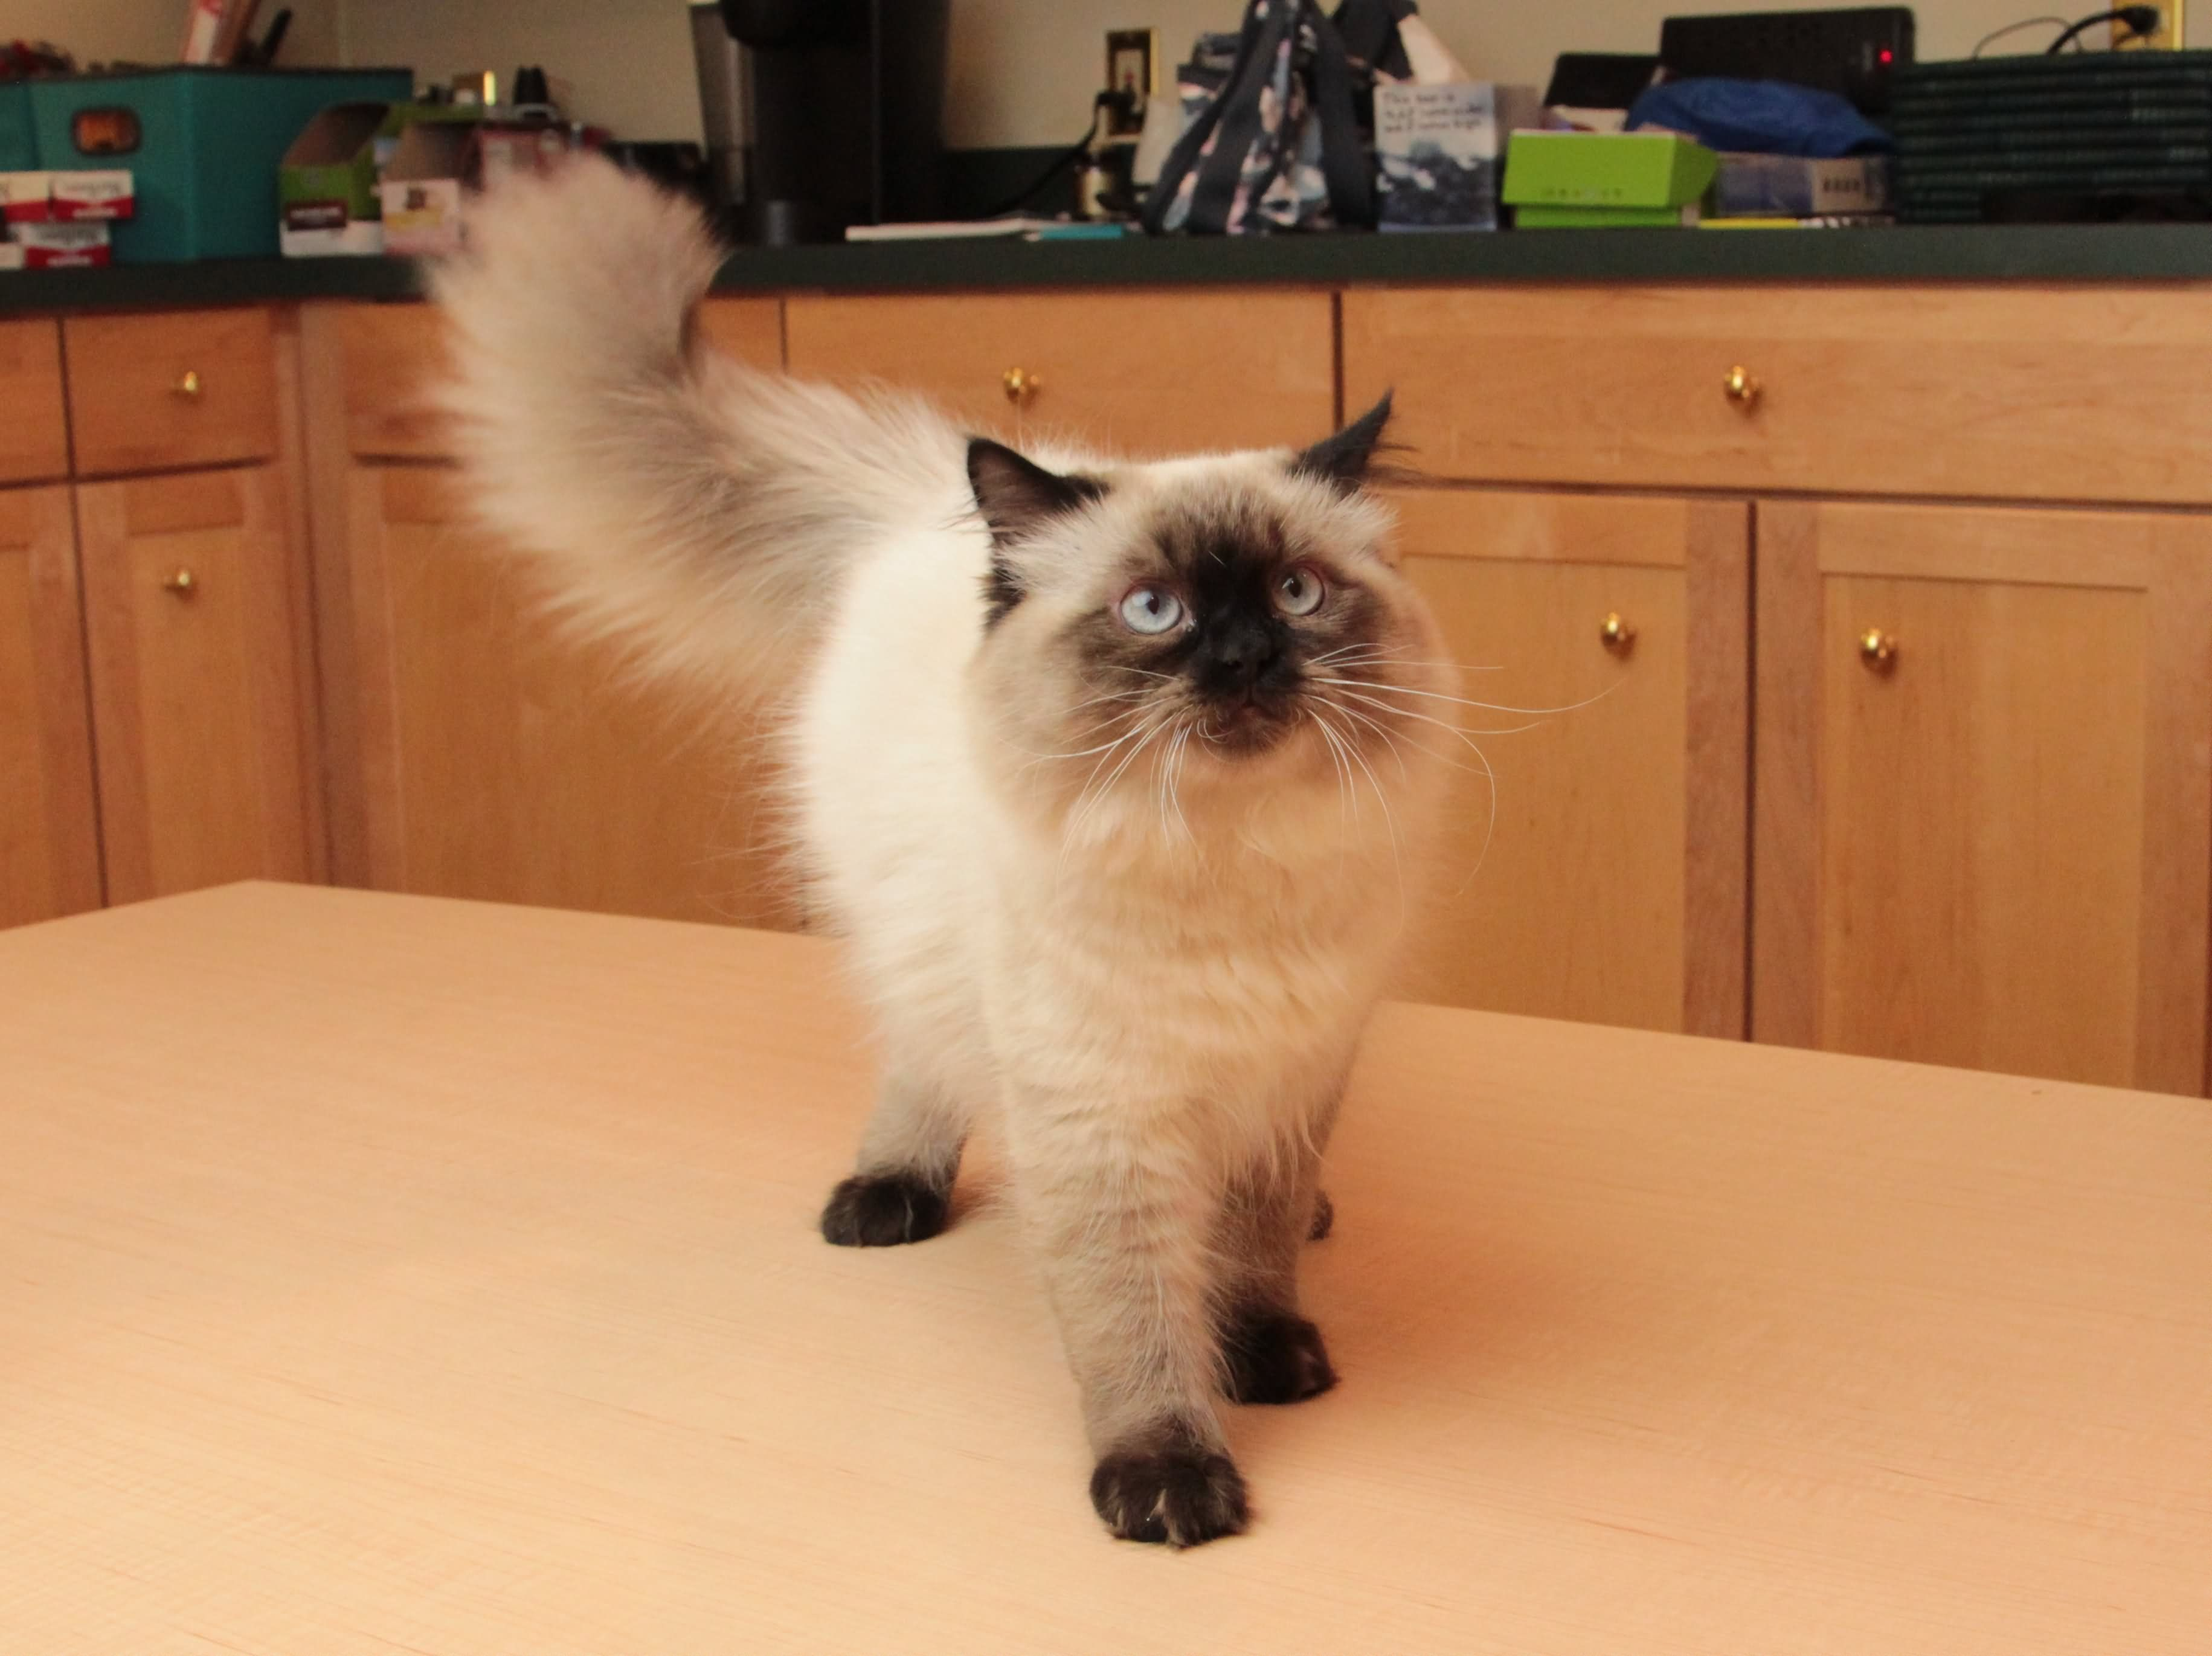 Seal Point Himalayan Cat Inside Himalayan Cat Is A Breed Or Sub Breed Of Long Haired Cat Identical In Type To Th Persian Cat Doll Face Cat Breeds Persian Cat